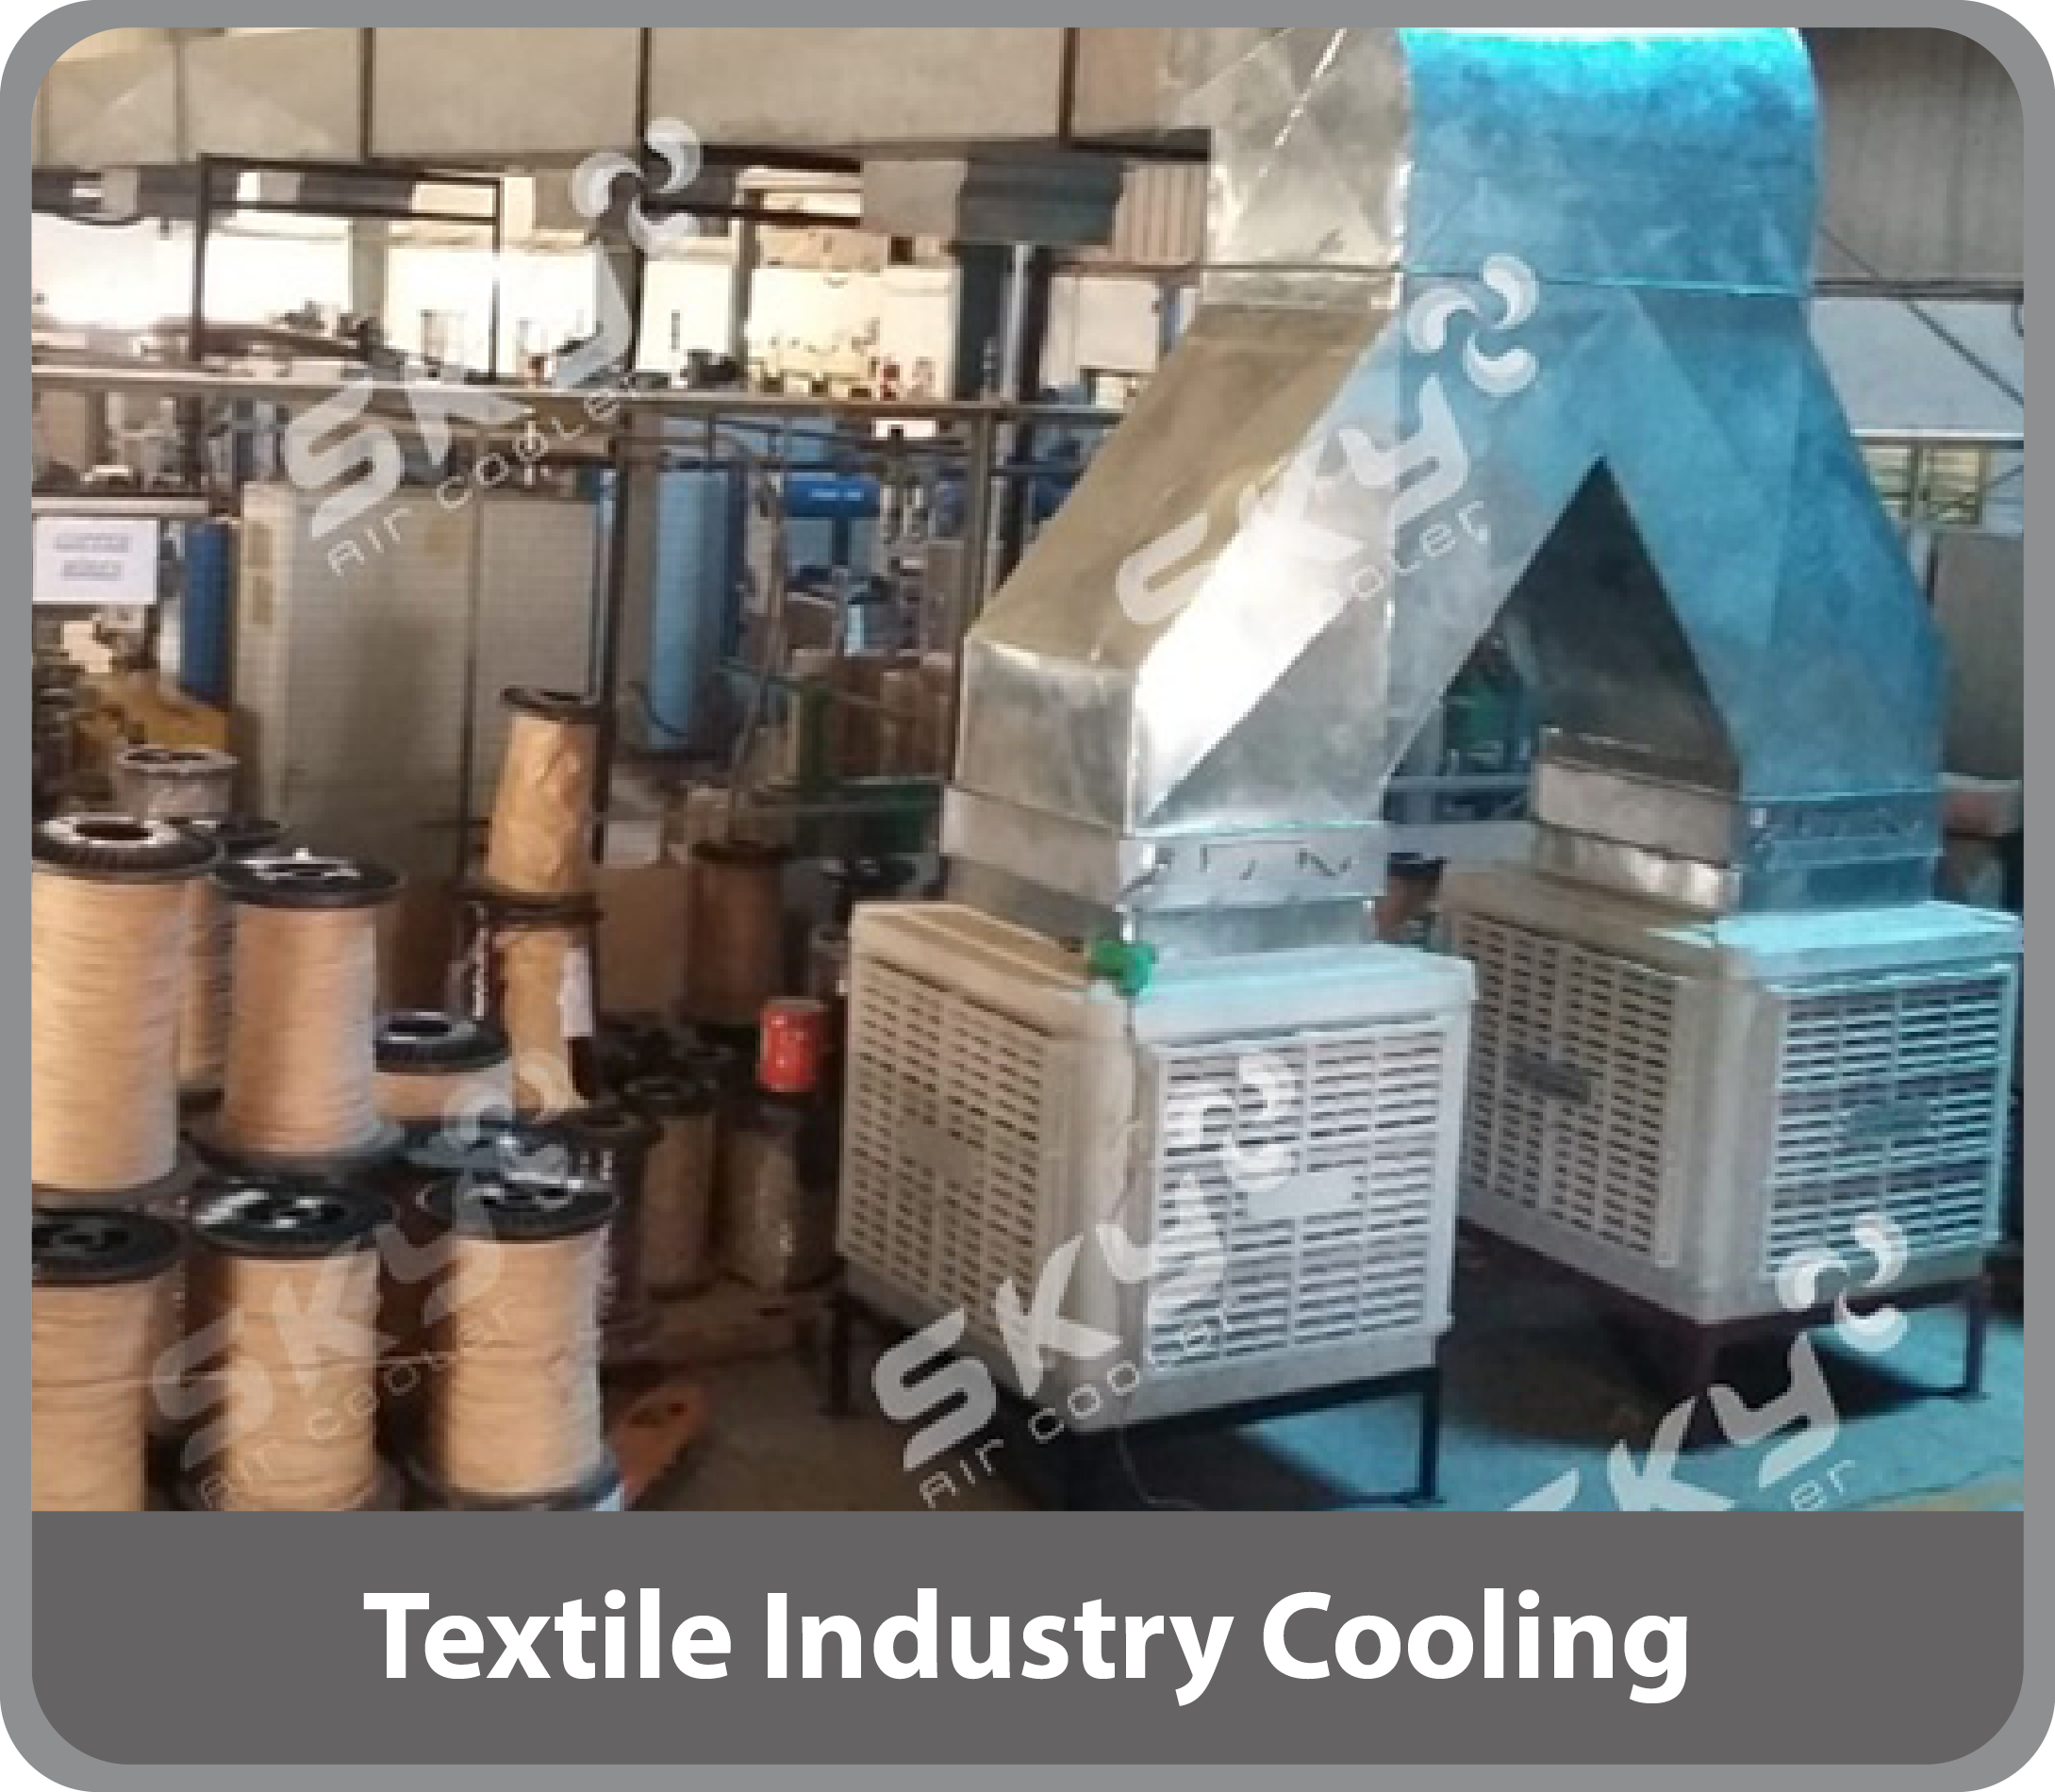 Textile Industry Cooling